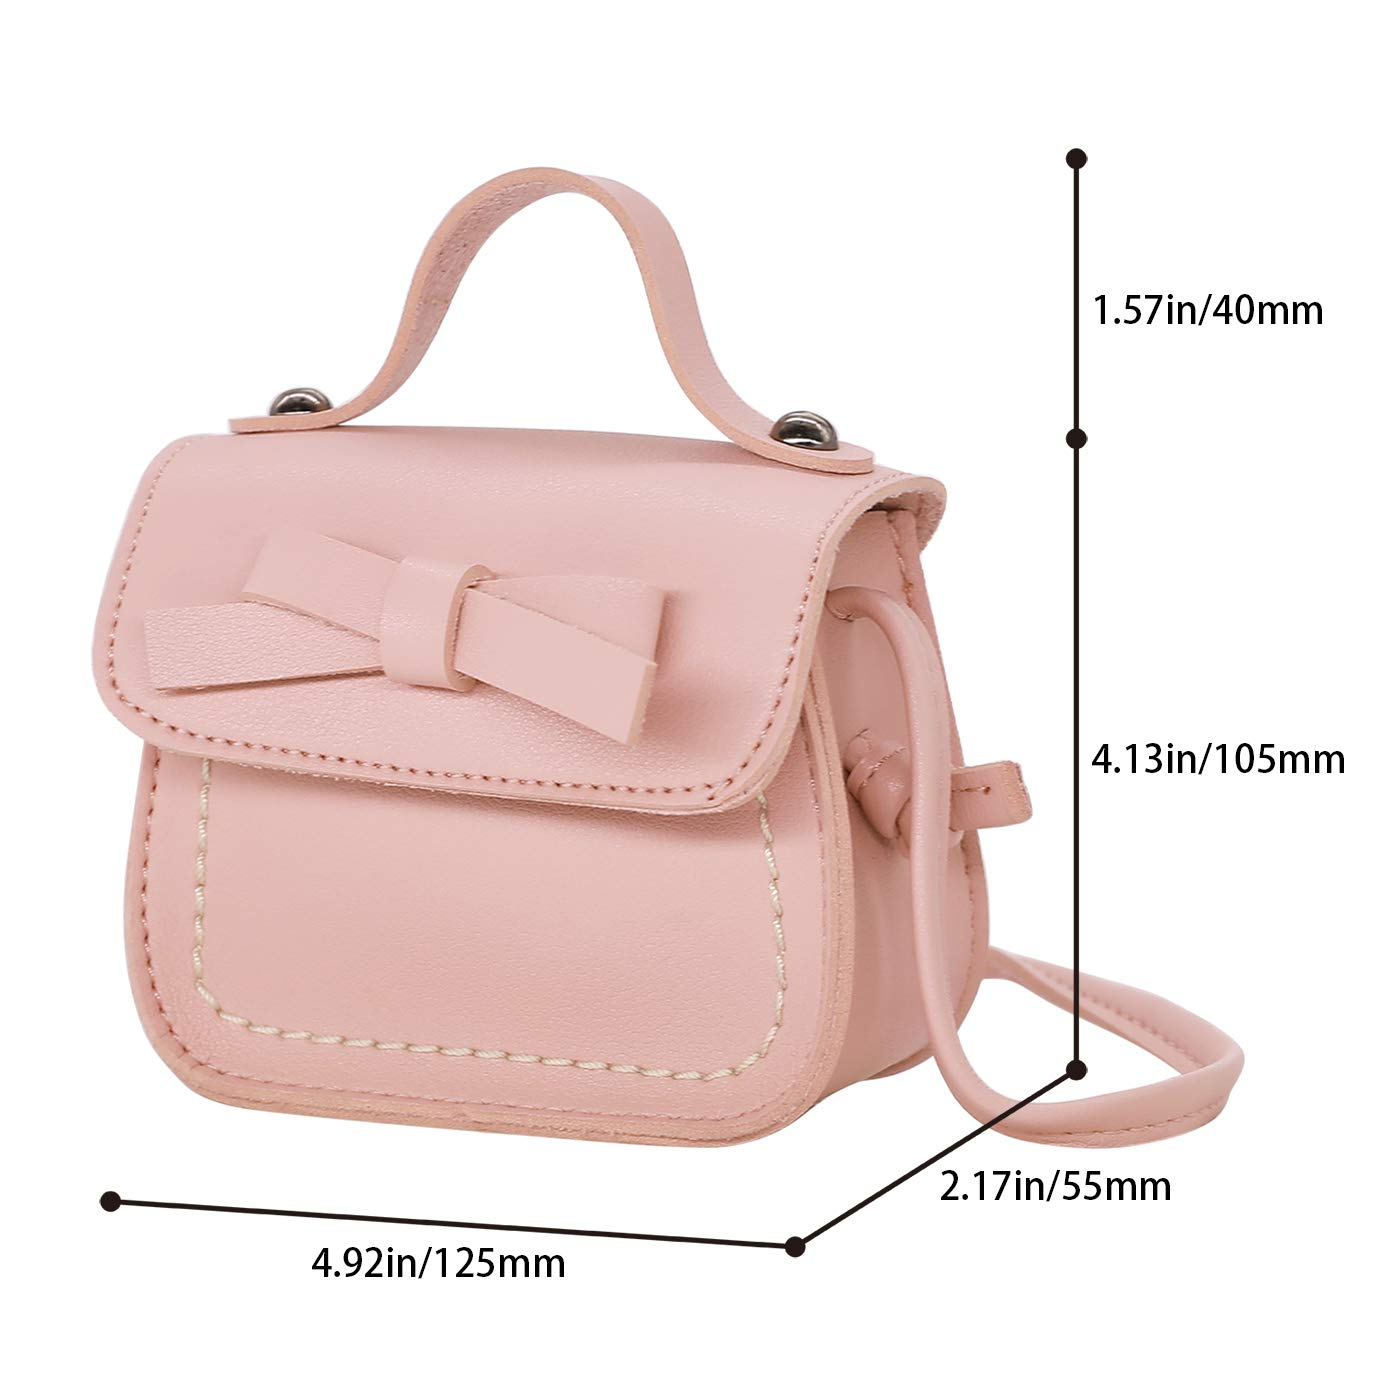 Amazon.com: HDE Small Fashion Purse for Little Girls Light Pink Toddler Kids Bag Cute Bow (Pink): Clothing